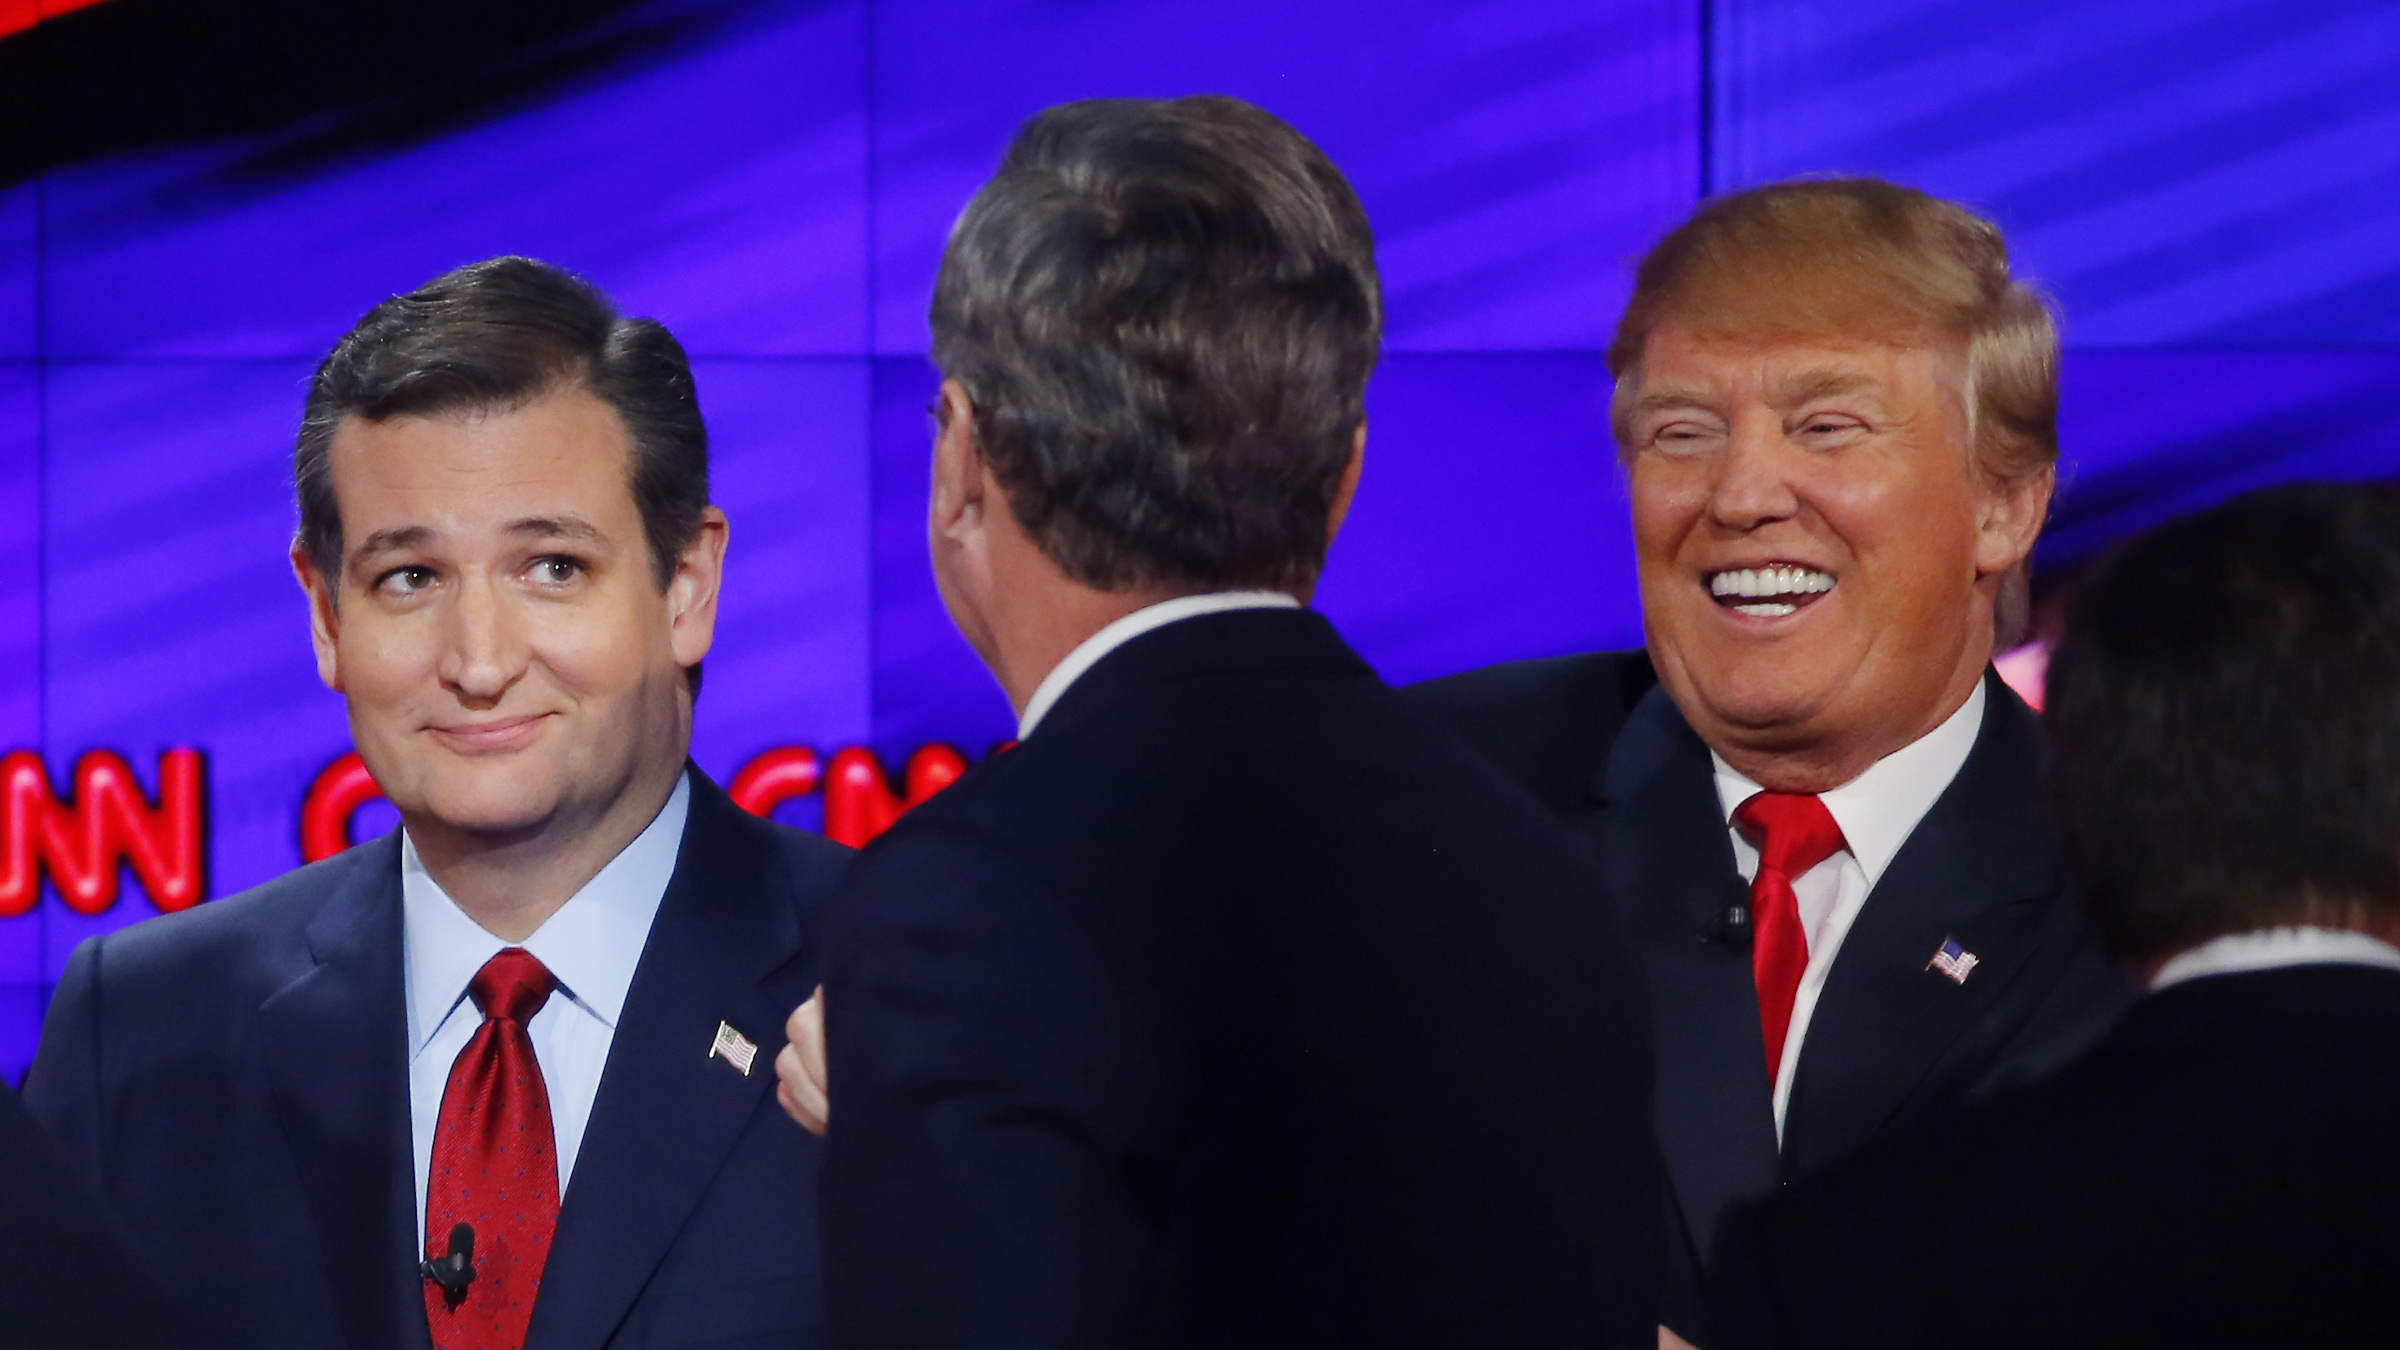 Republican U.S. presidential candidates (L-R) Senator Ted Cruz, former Governor Jeb Bush and businessman Donald Trump talk at the end of the Republican presidential debate in Las Vegas, Nevada December 15, 2015.